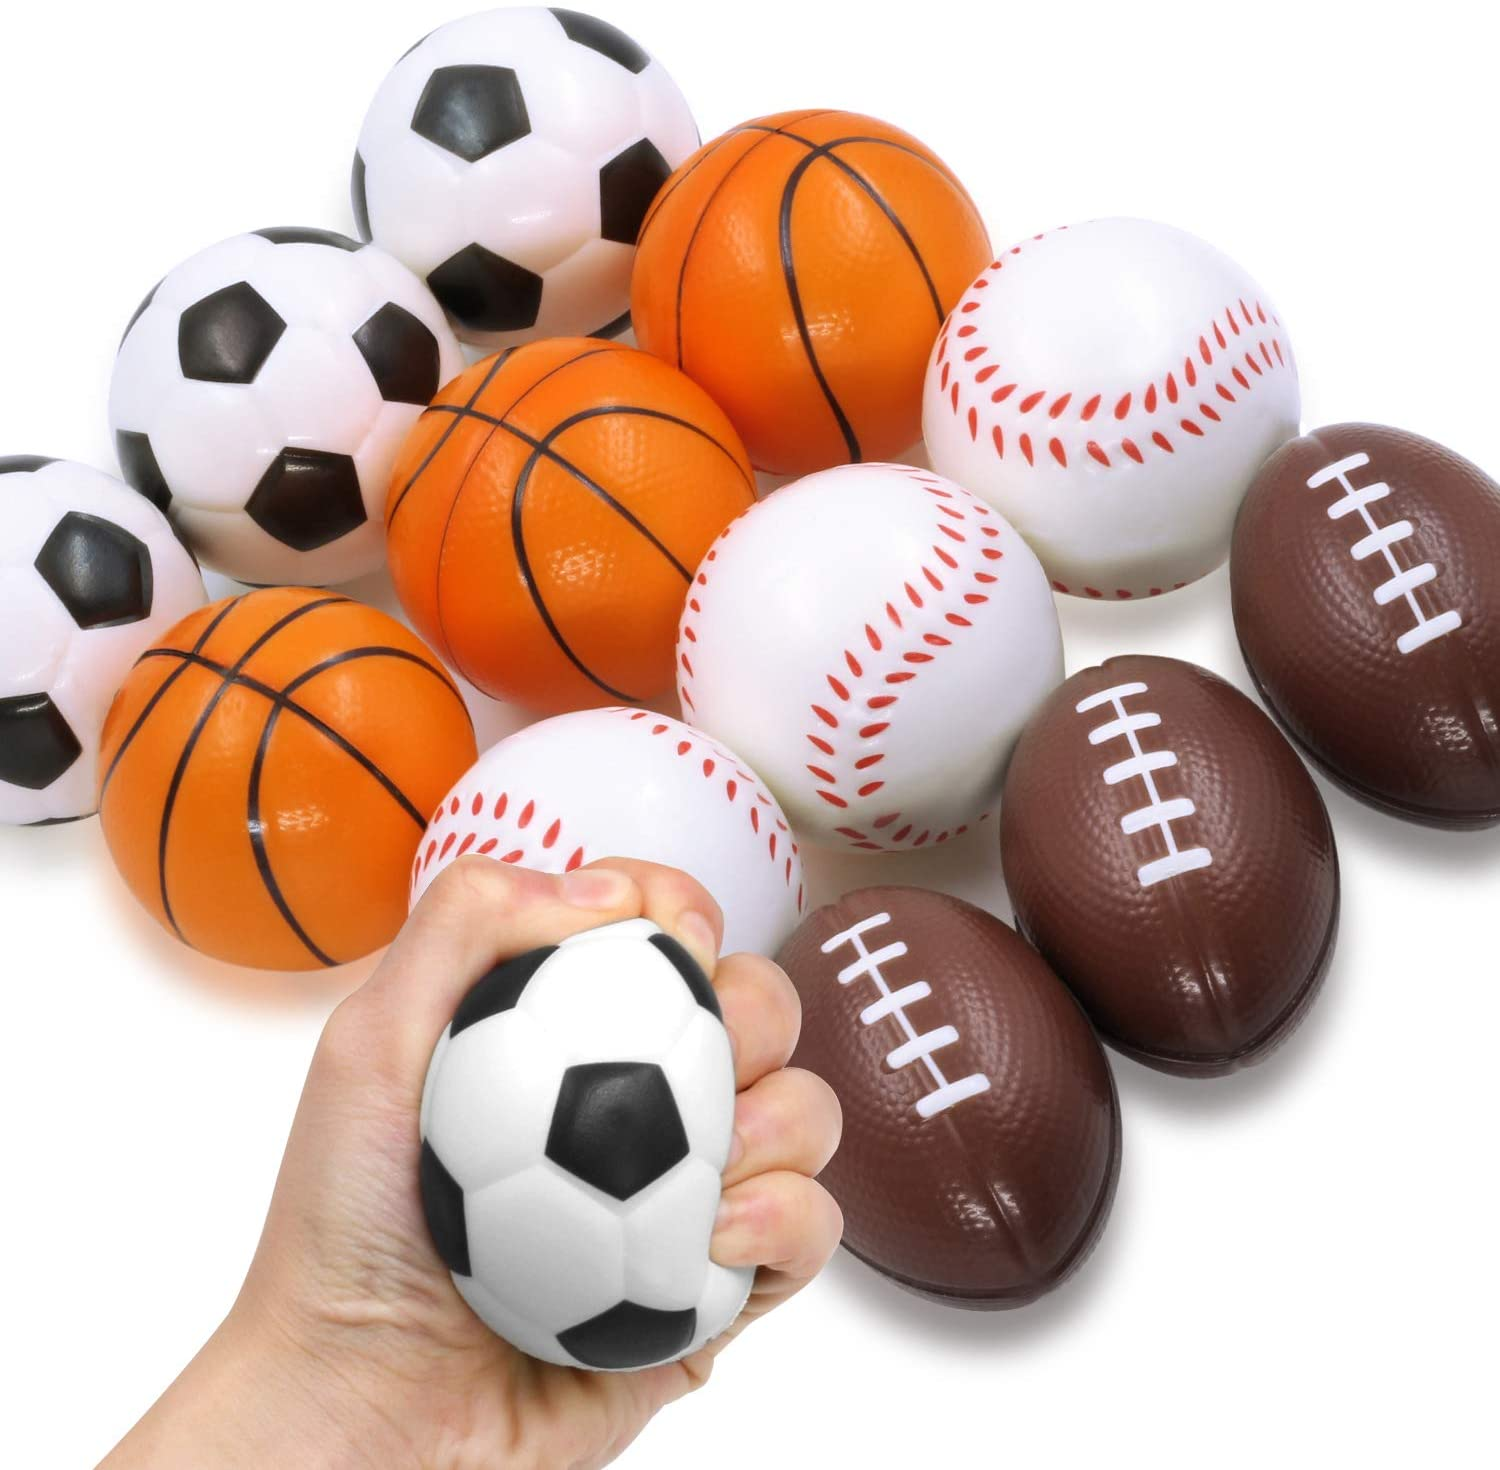 Novelty Place Squeezable Stress Balls - Anti-Stress Baseball, Basketball, Soccer, Football for Tension Relief - Relaxation Gadgets, Fidget Toys, Party Favors, Carnival Prizes(12 Pack & 4 Ballgames)